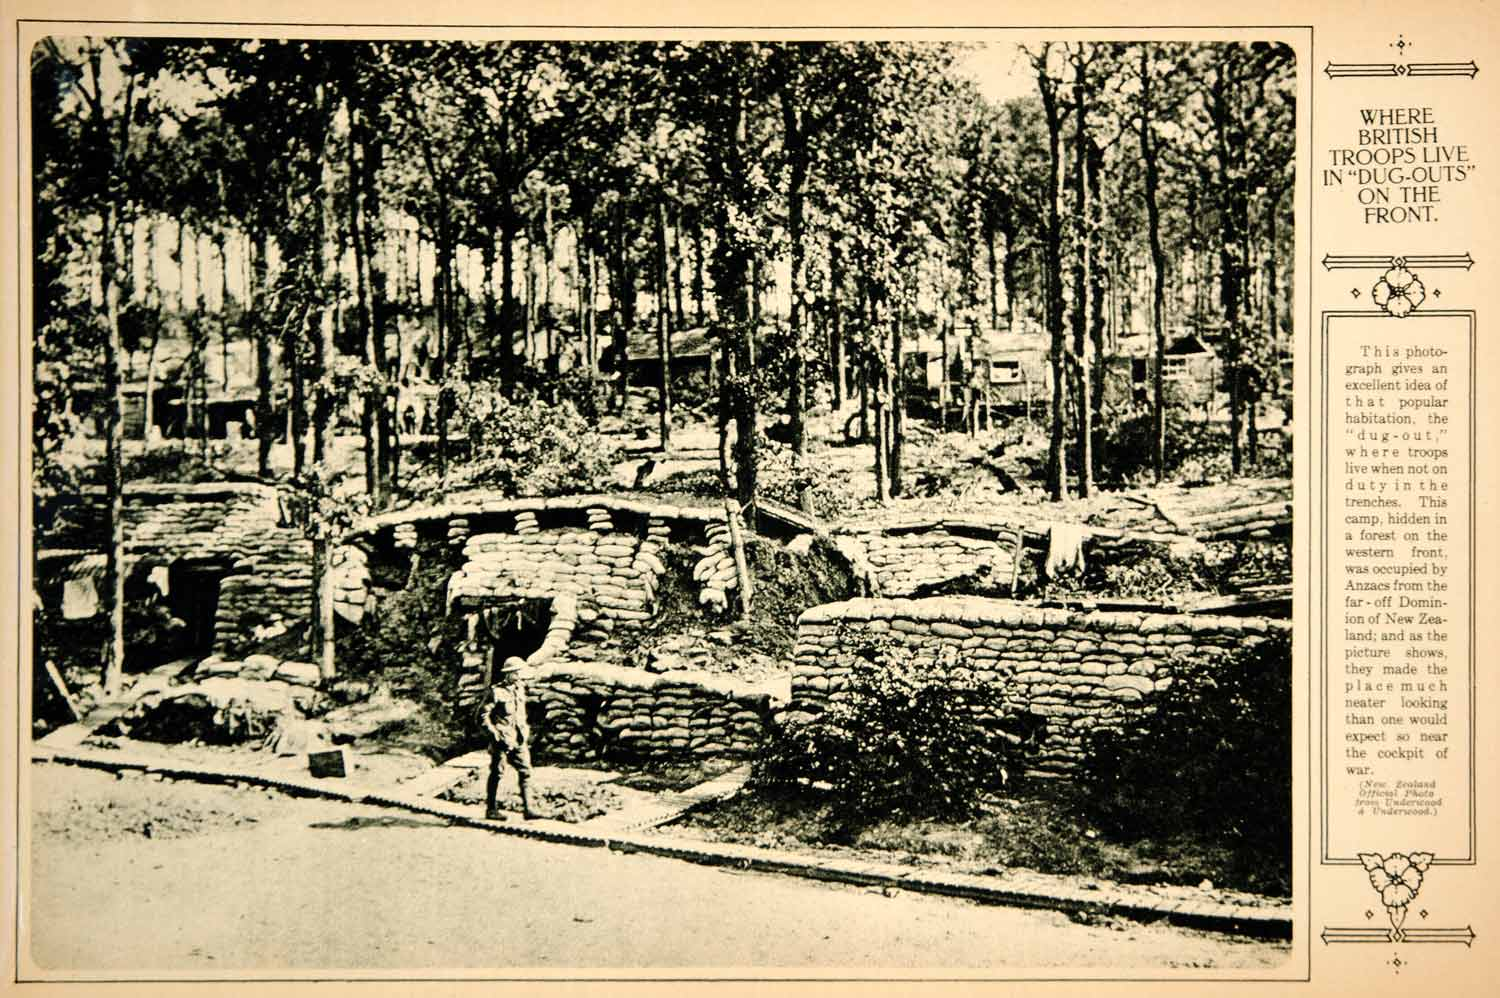 1917 Rotogravure World War I British Camp Western Front Dugout Huts Housing  YNY3